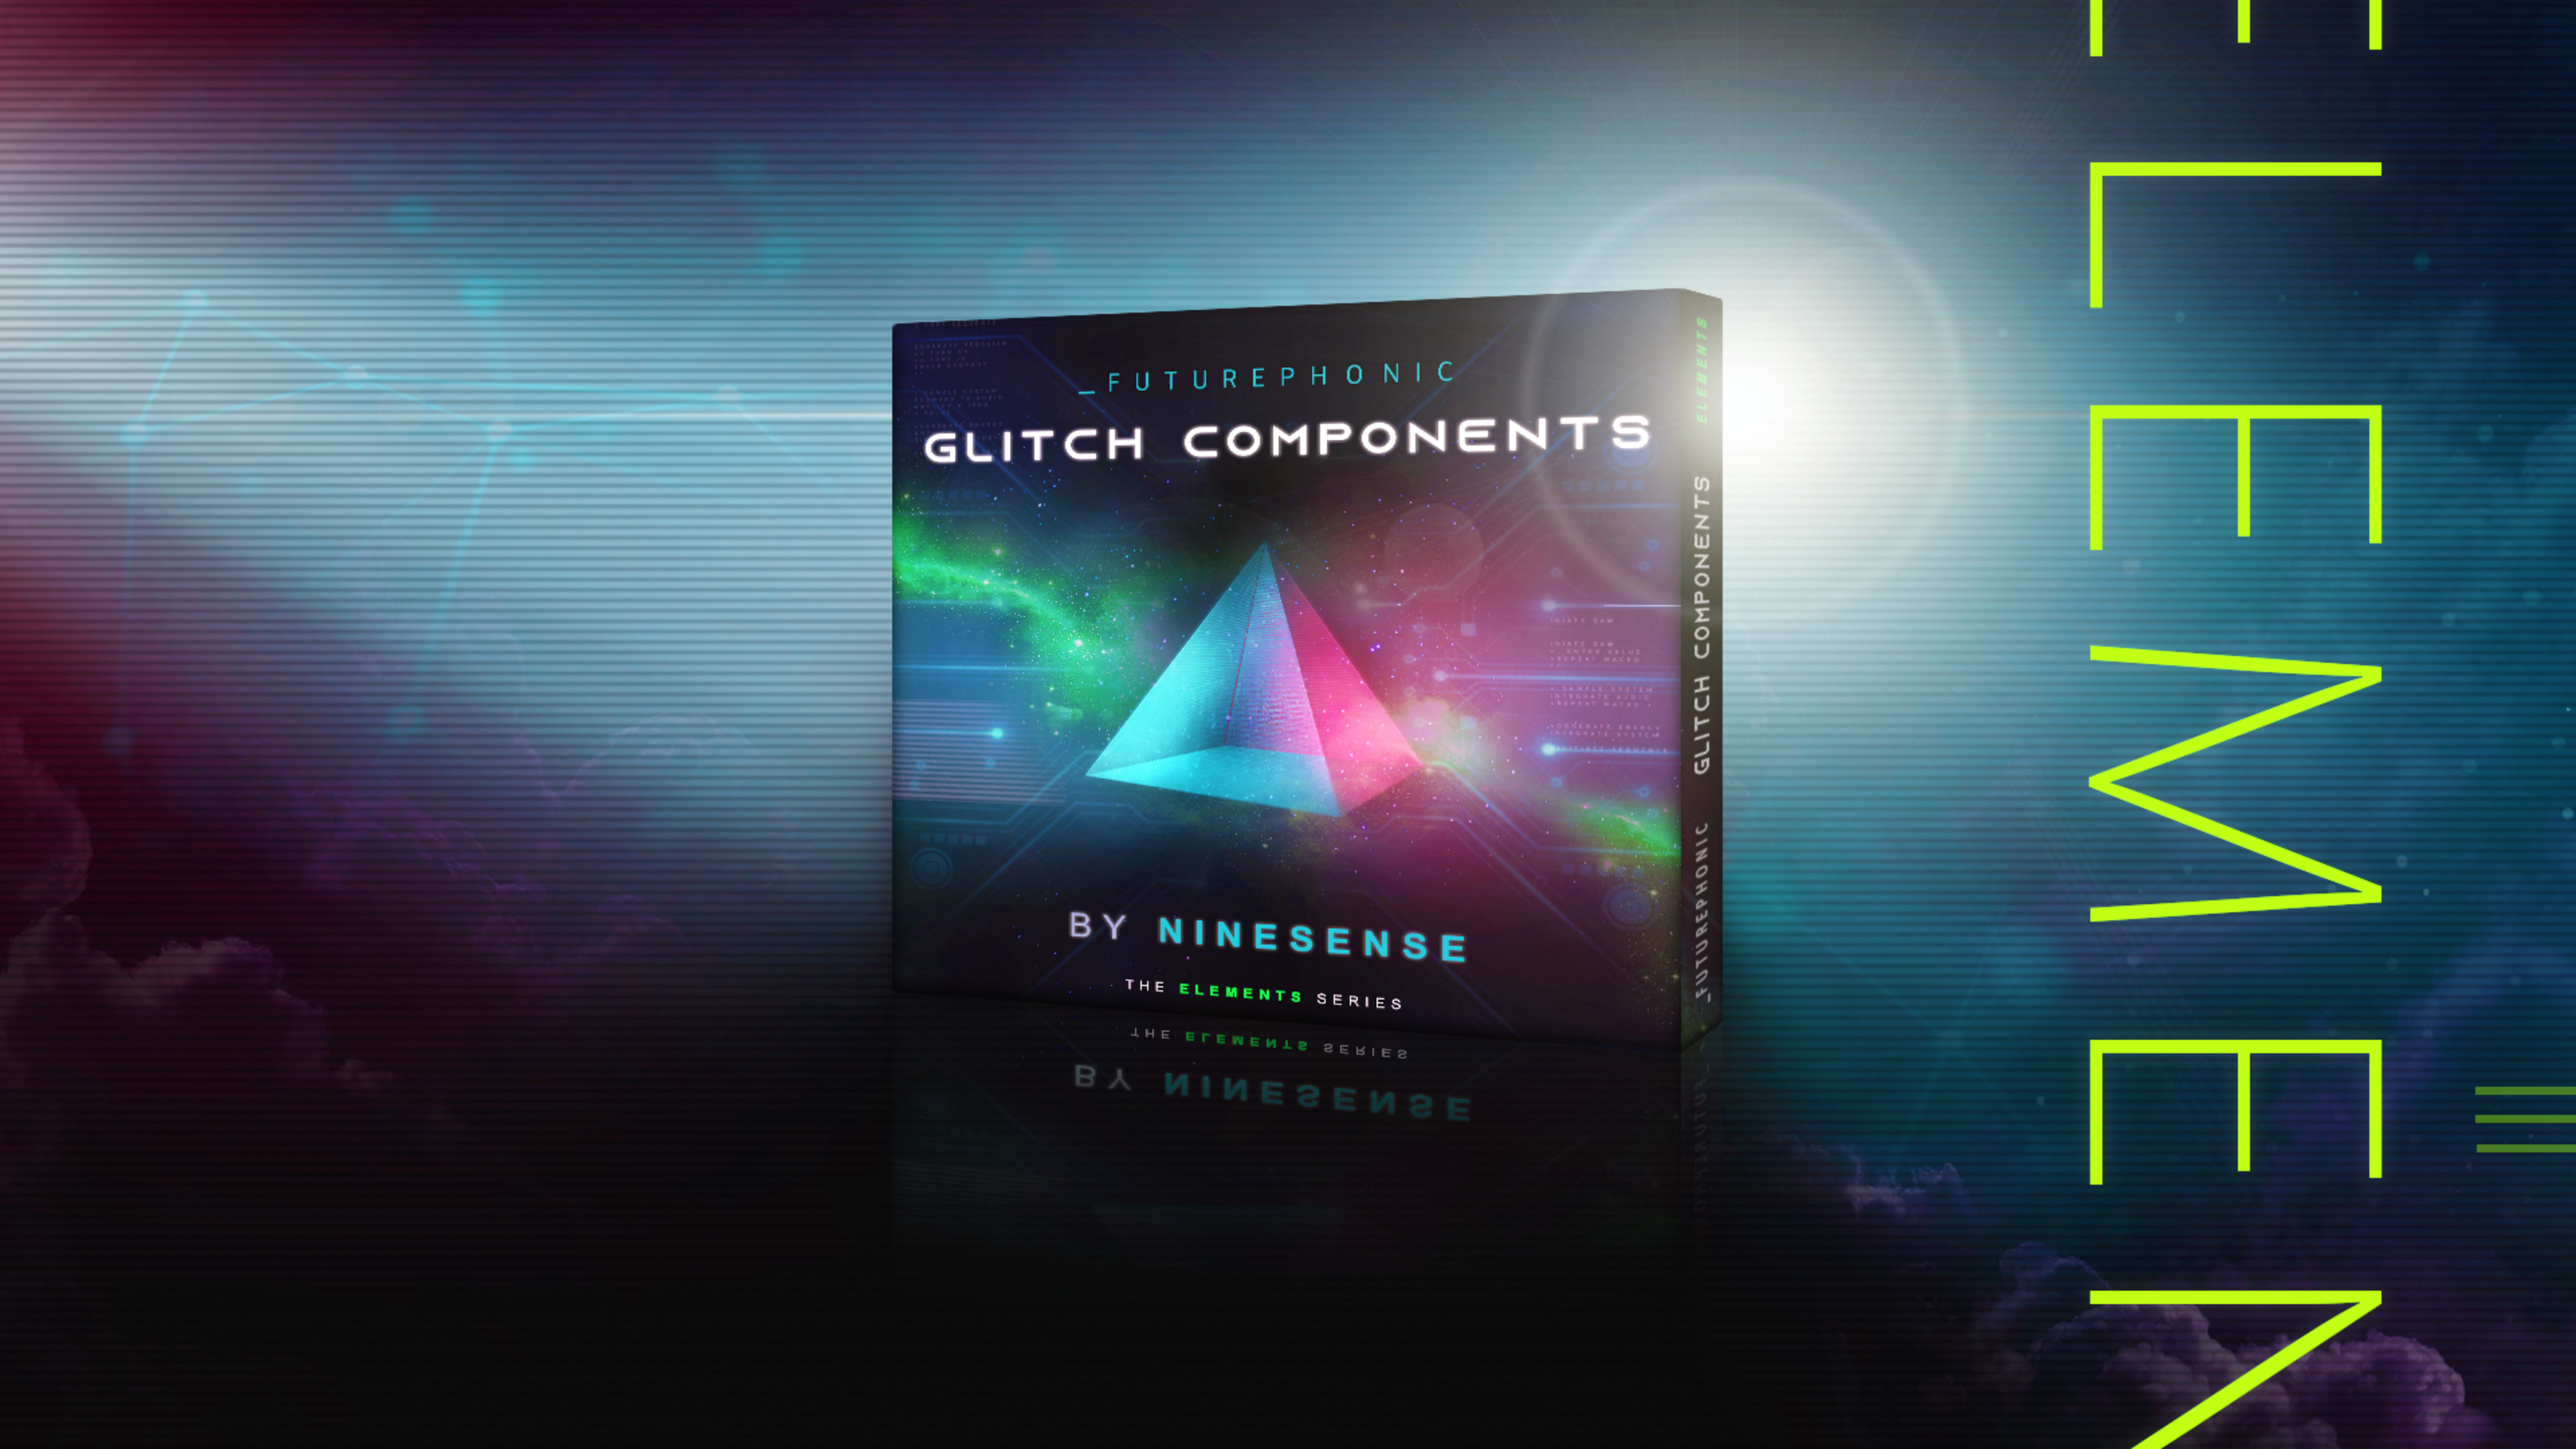 Glitch Components by Ninesense